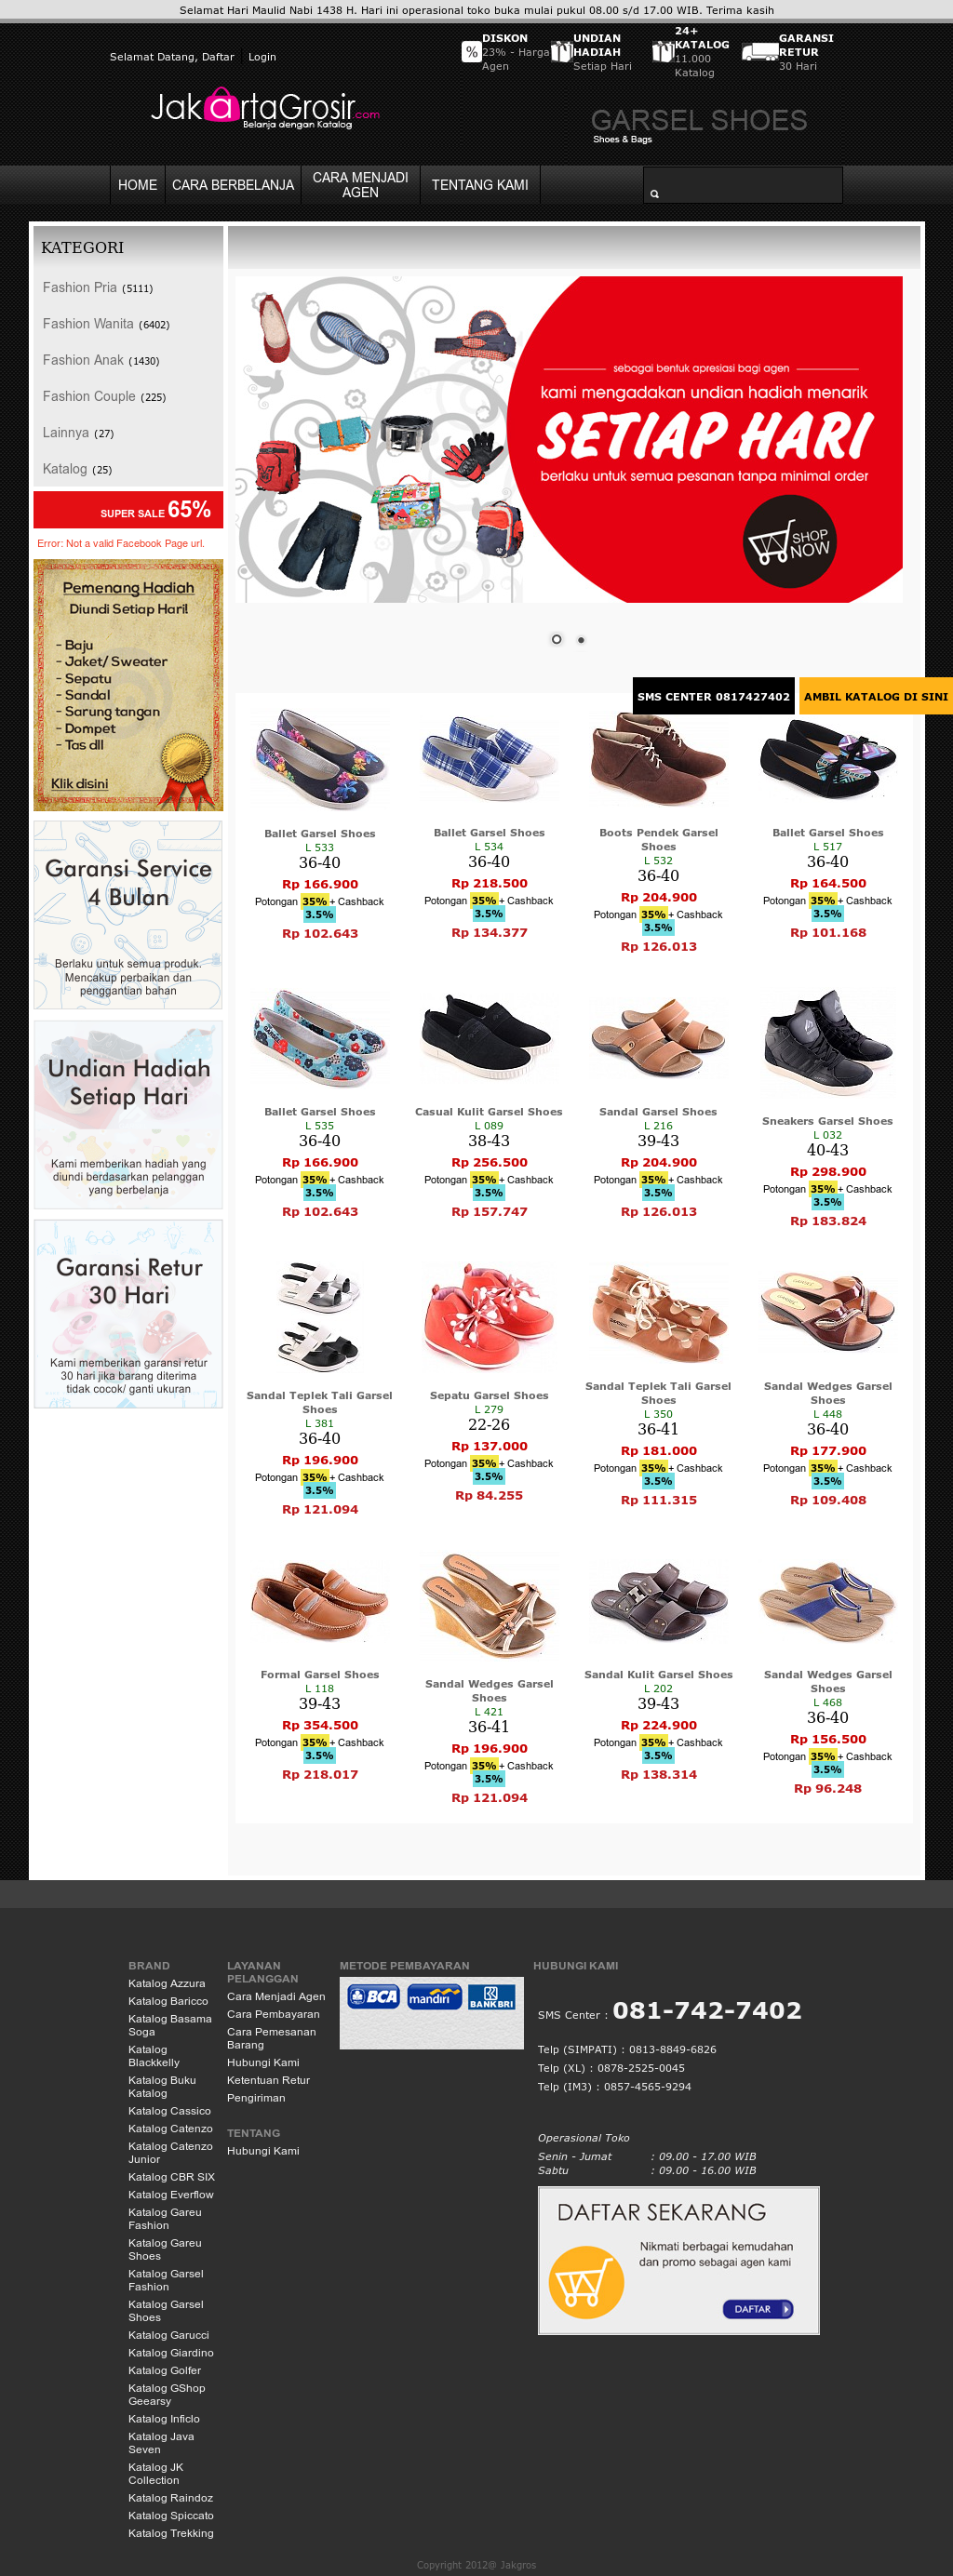 Garsel Shoes Competitors Revenue And Employees Owler Company Profile 009 Tas Anak